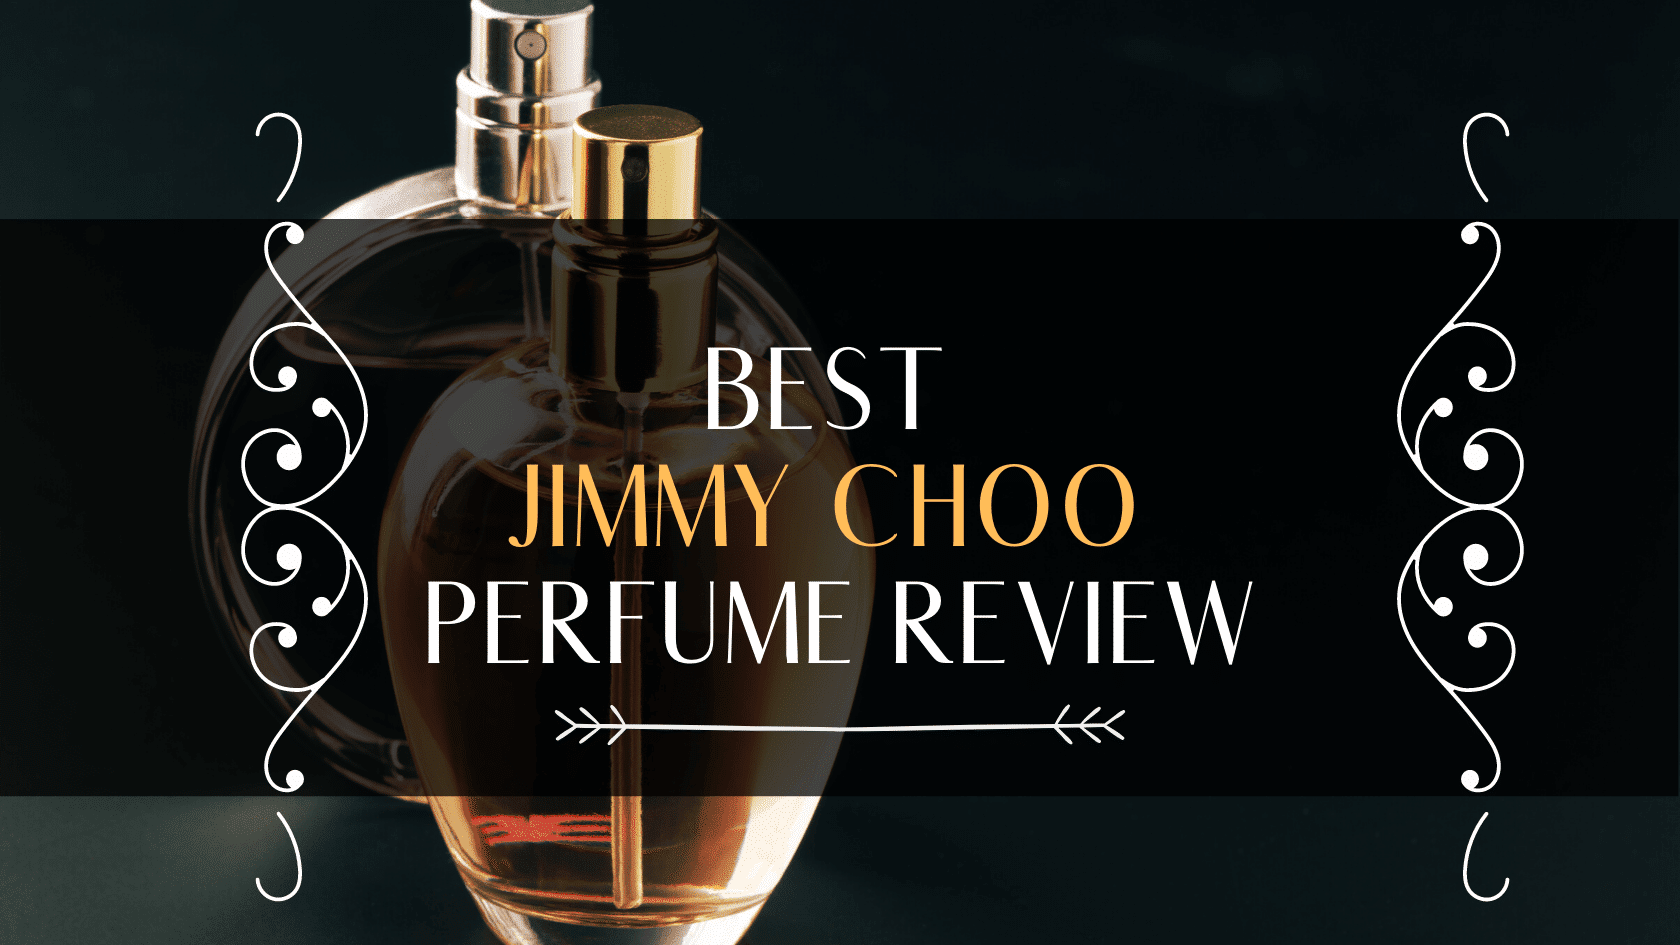 best jimmy choo perfume